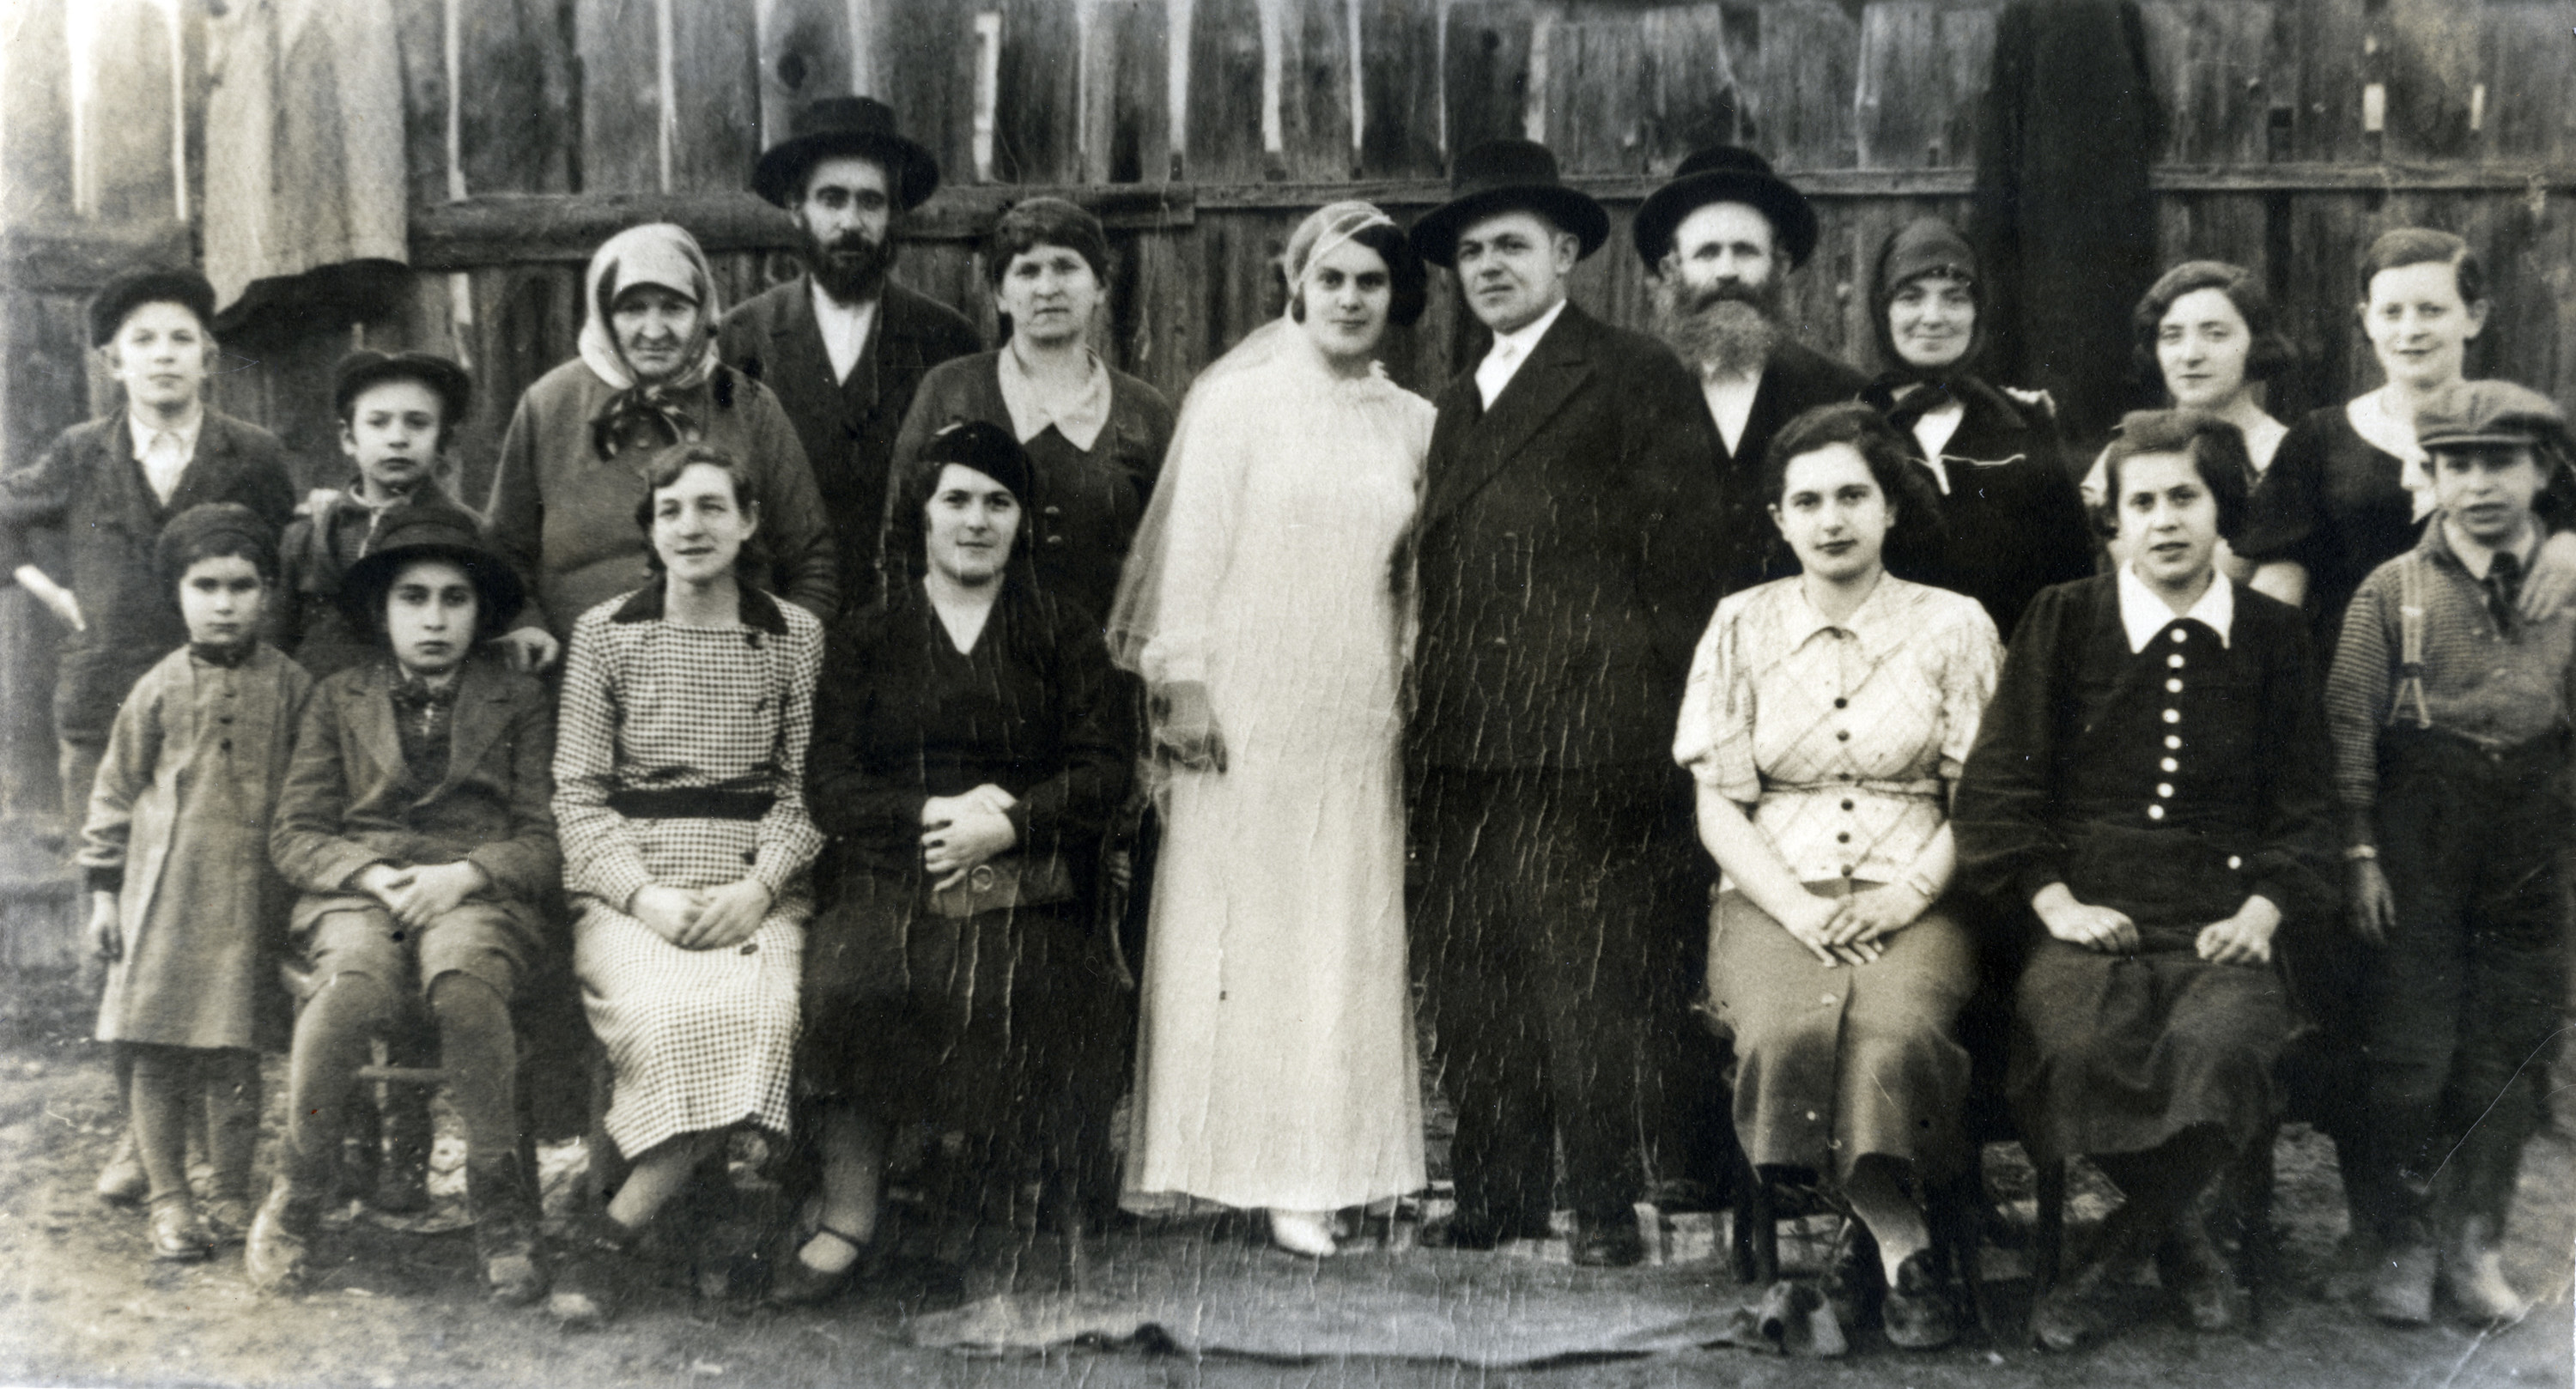 Group photograph of  wedding attendees in Solotvino, Czechslovakia.  Among those pictured are Israel Menachem Perl  and his wife Rachel Golda Perl (back row, fourth and fifth from the left), and their children Nahum (back row, far left), Chana (front row, far left), David (front row, second from the left), Rivka (front row, second from the right), and Alexander, (front row, far right).  The names of the bride and groom are not known.